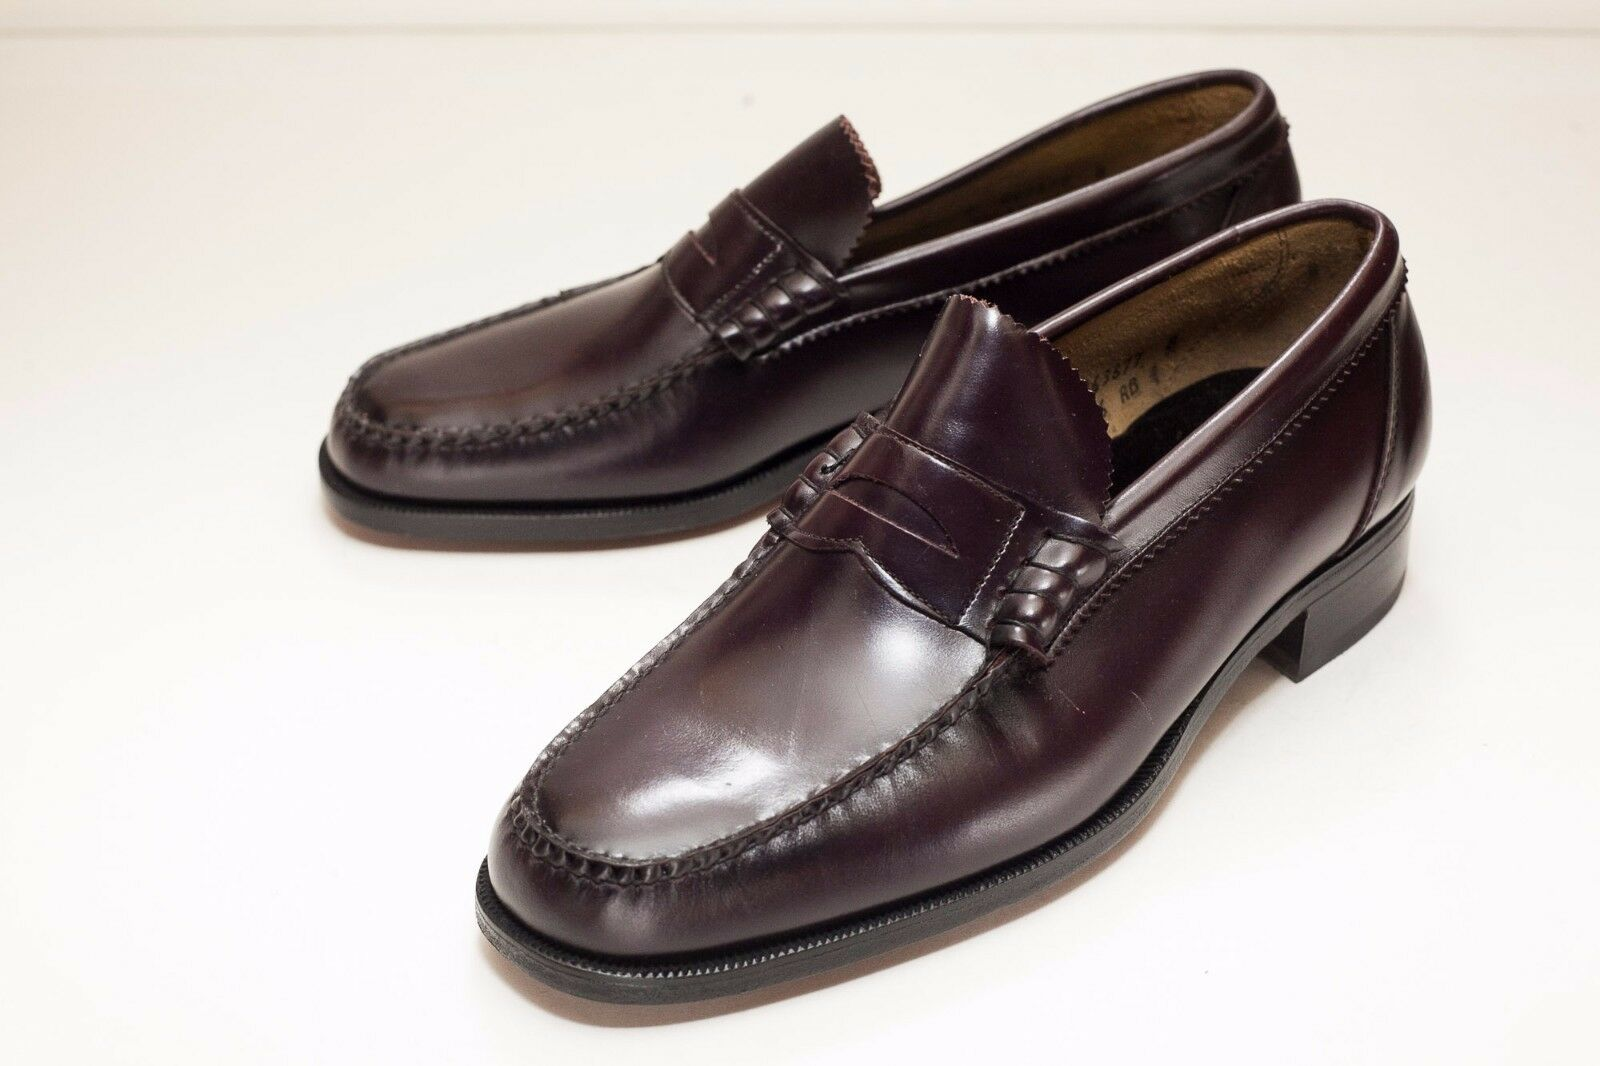 Mr/Ms Florsheim 9 Brown Penny Loafers Men's Charming design Highly the praised and appreciated by the Highly consumer audience Modern and elegant 597c07